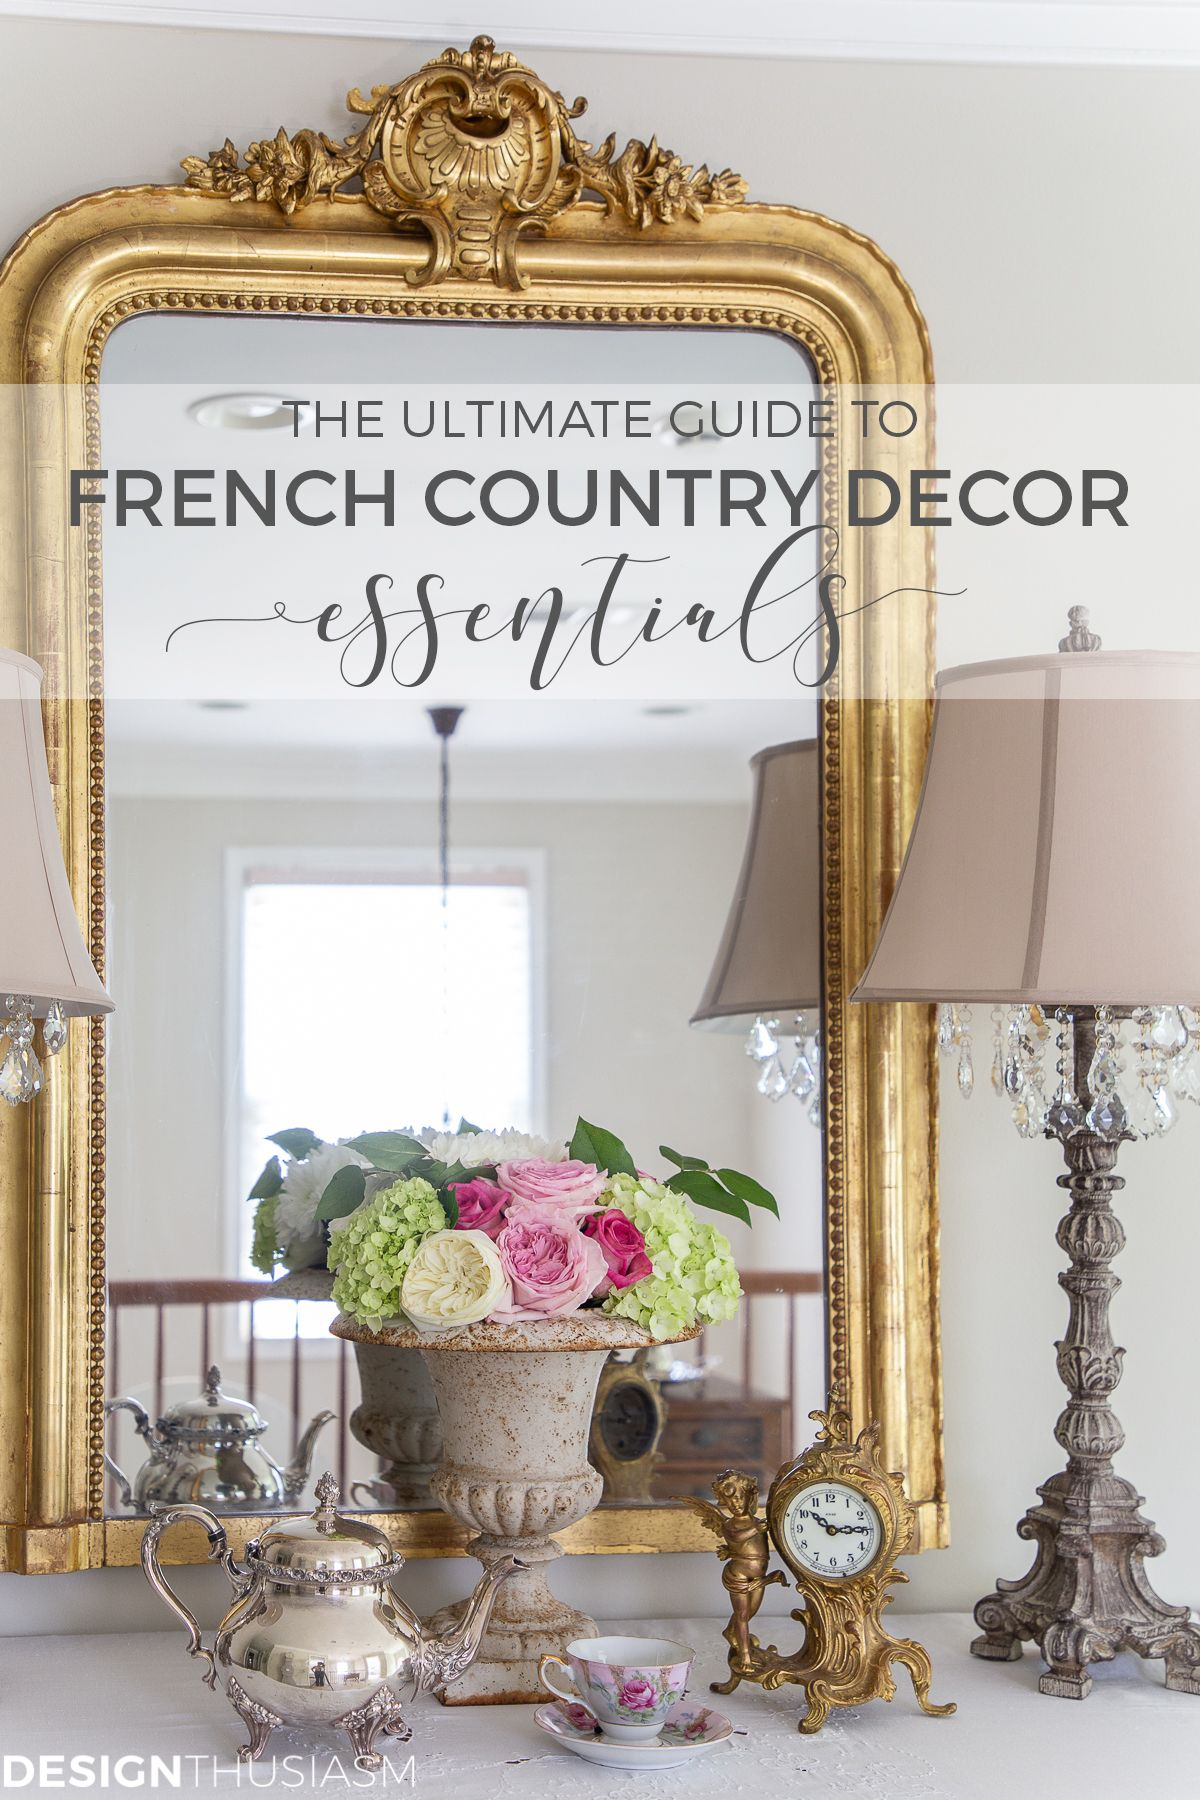 The Ultimate Guide To French Country Decor Essentials French Country Decorating French Country Rug Country Cottage Decor